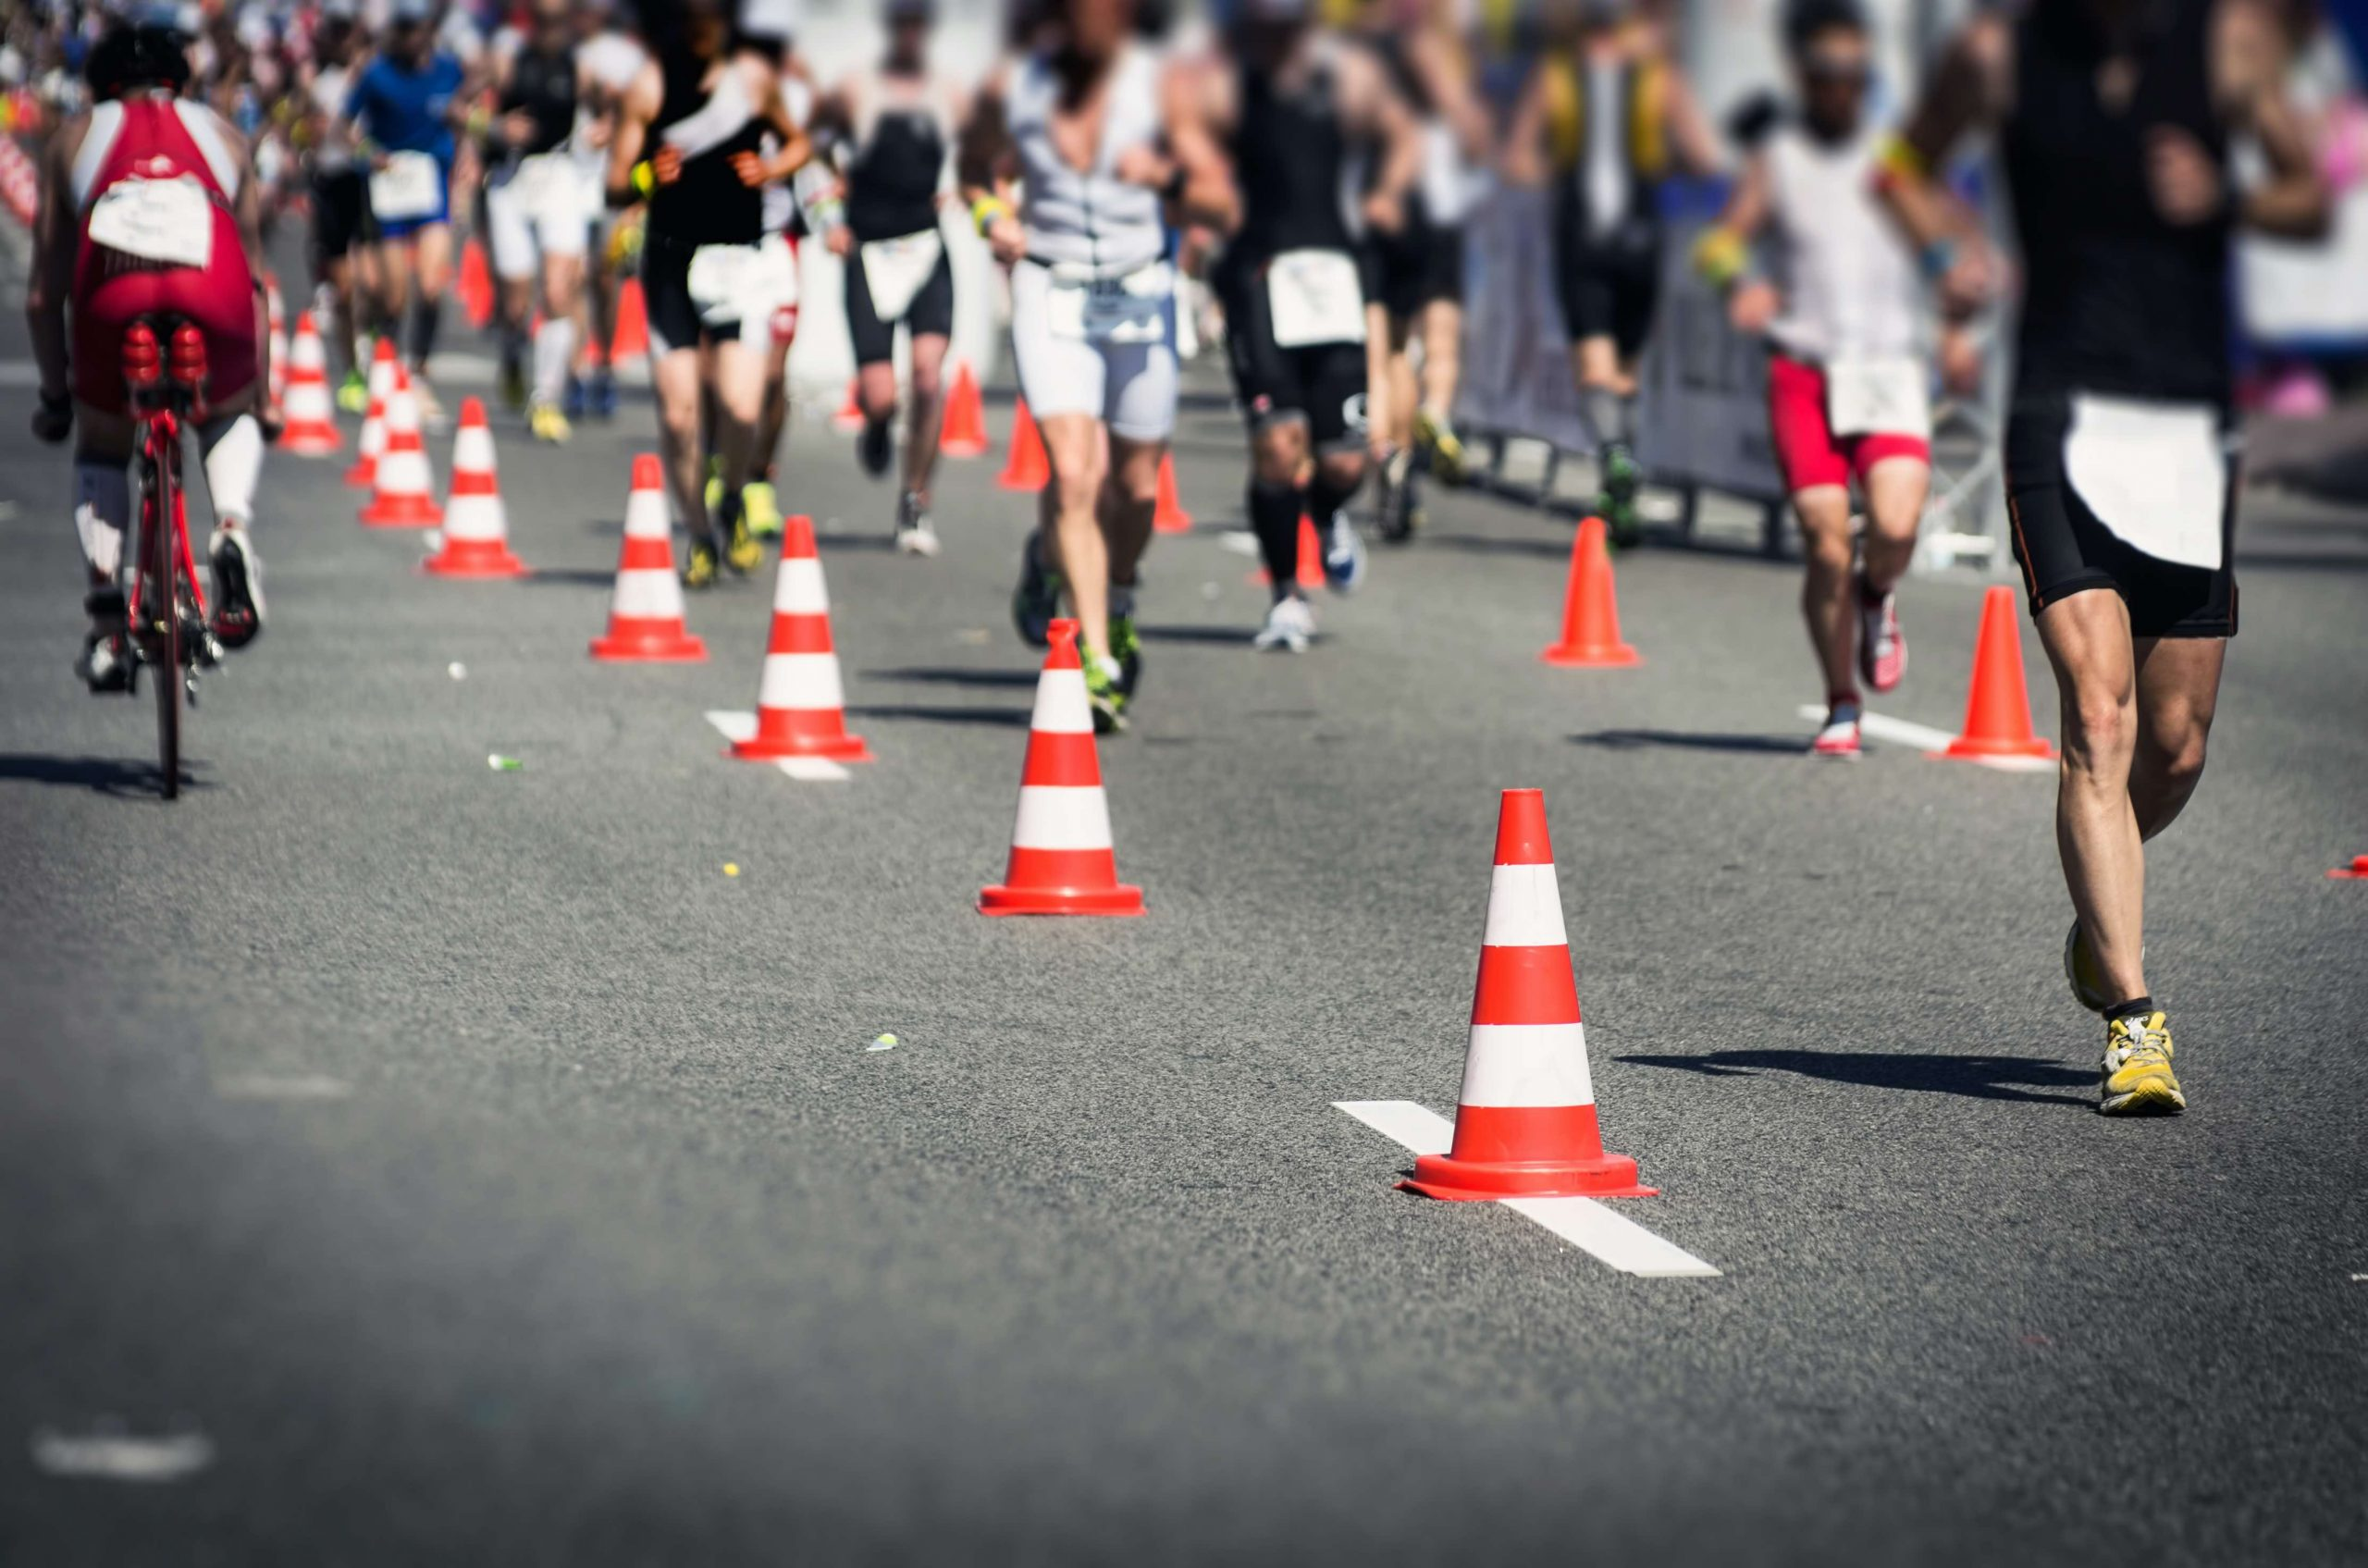 Triathlon Distances Explained: Sprint Triathlons to Ironman Triathlons and more